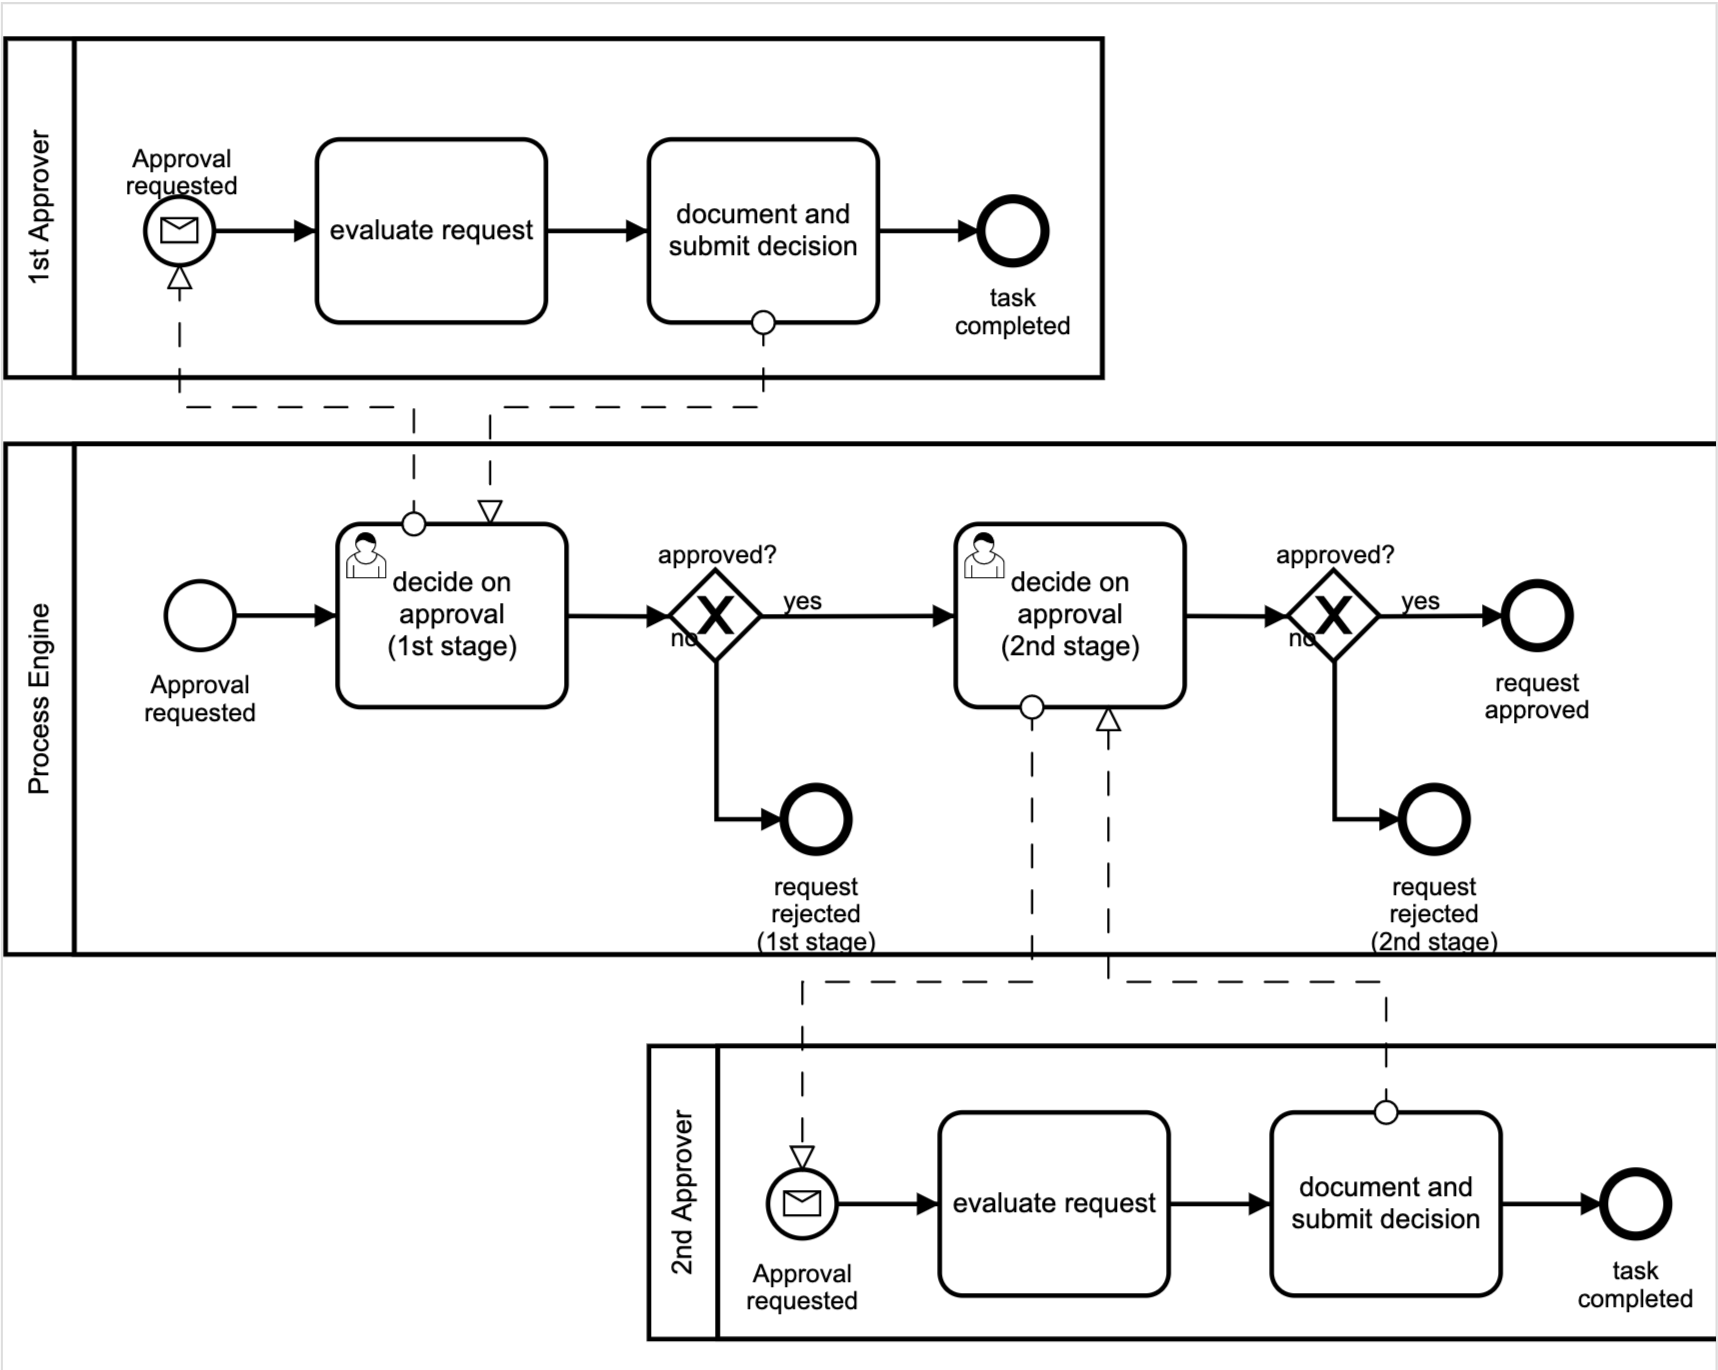 BPMN Example - 2 person approval